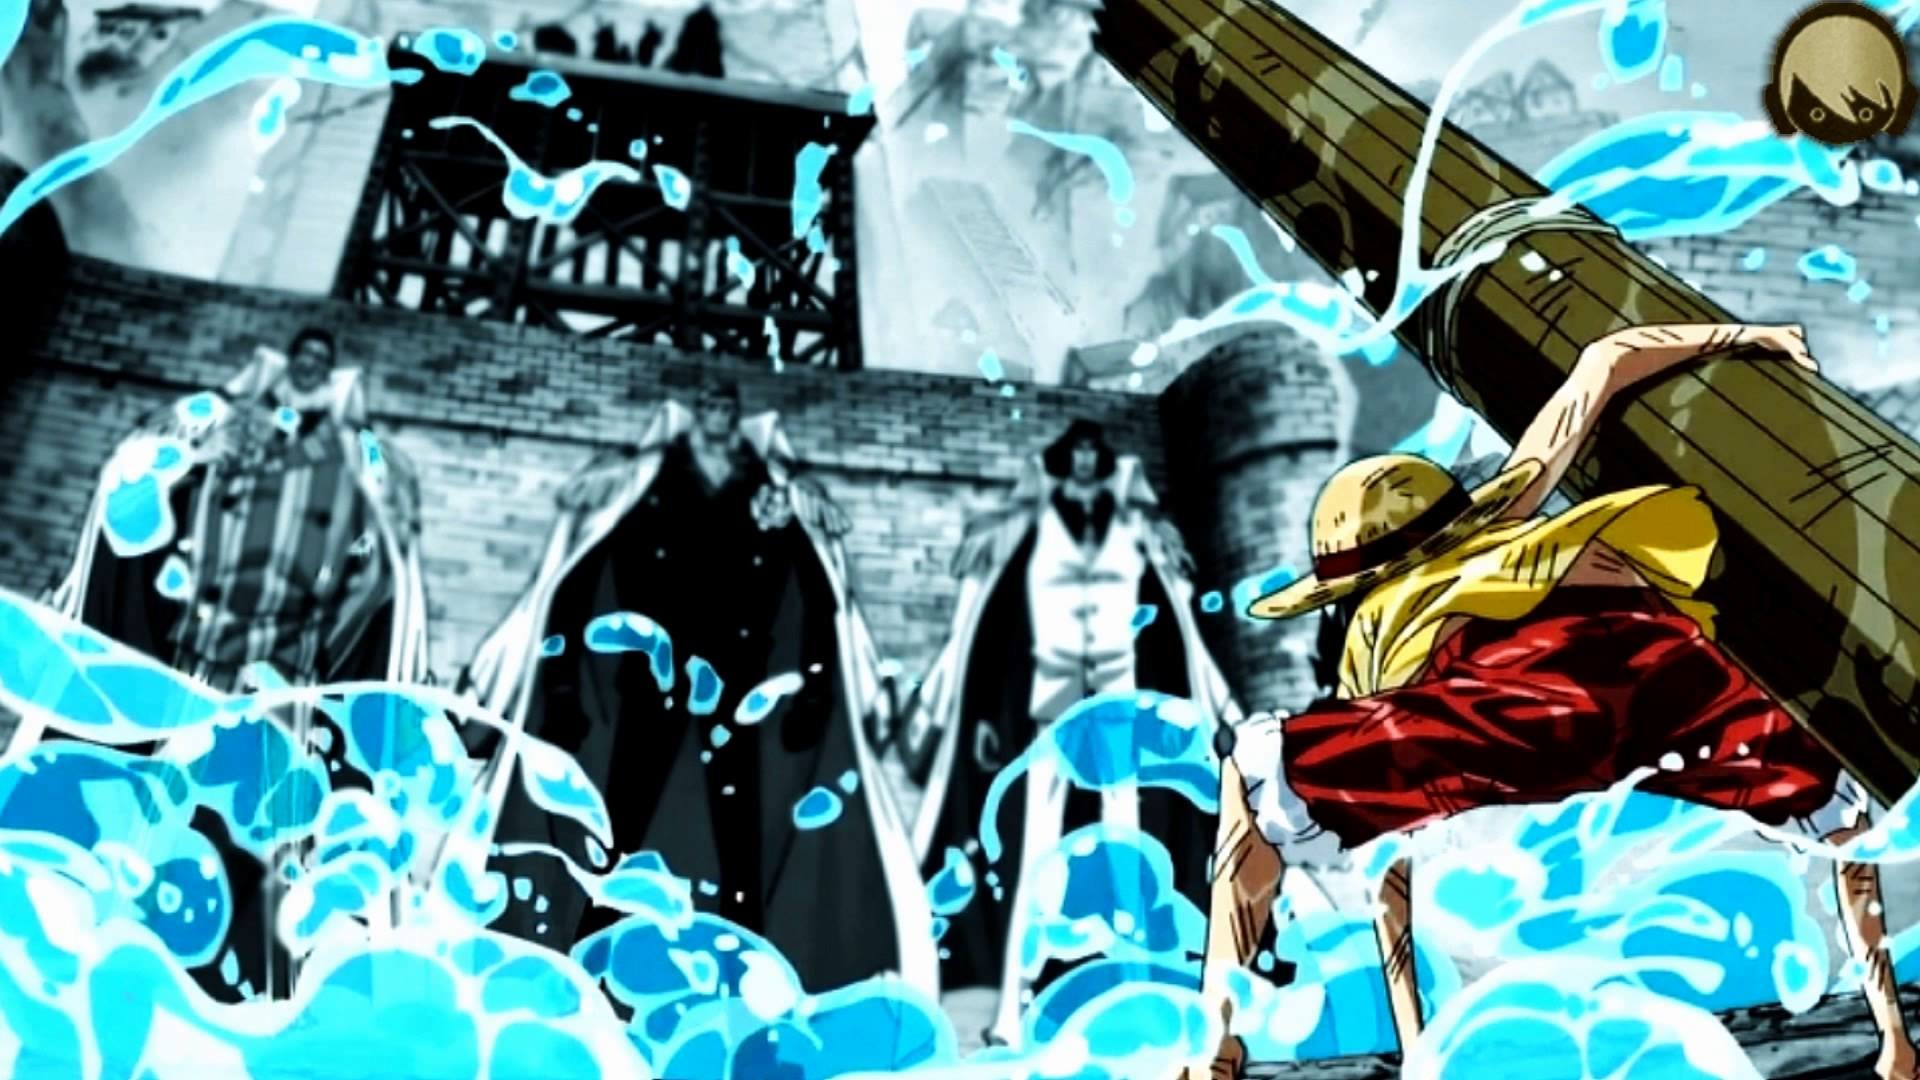 1920x1080 ... (Original size). Tags: #one piece wallpaper epic · «